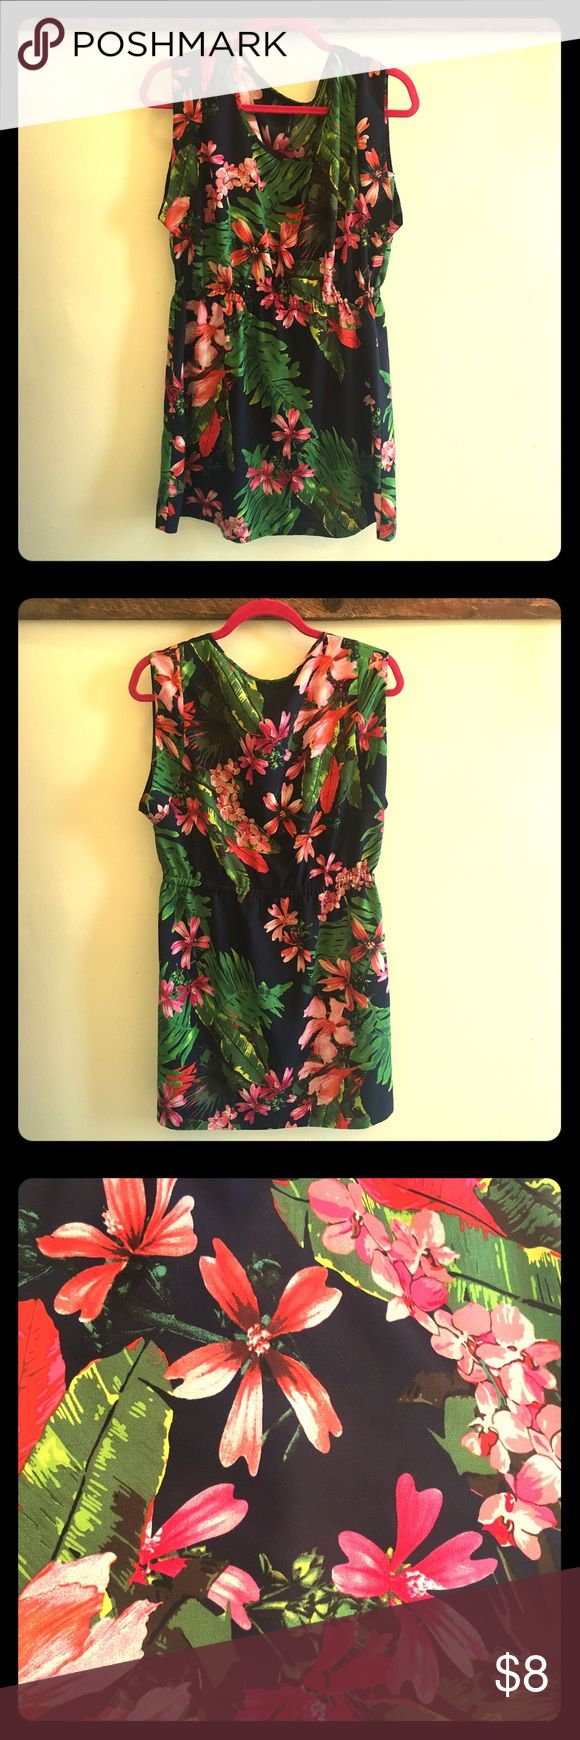 🌺🌺 MNG By Mango Tropical Floral Dress, Size 8 🌴🌴 too pretty! gentle wear, good pre-loved condition. a few loose strings + wrinkles.  half capped sleeves, elastic waist, no stretch. Mango Dresses